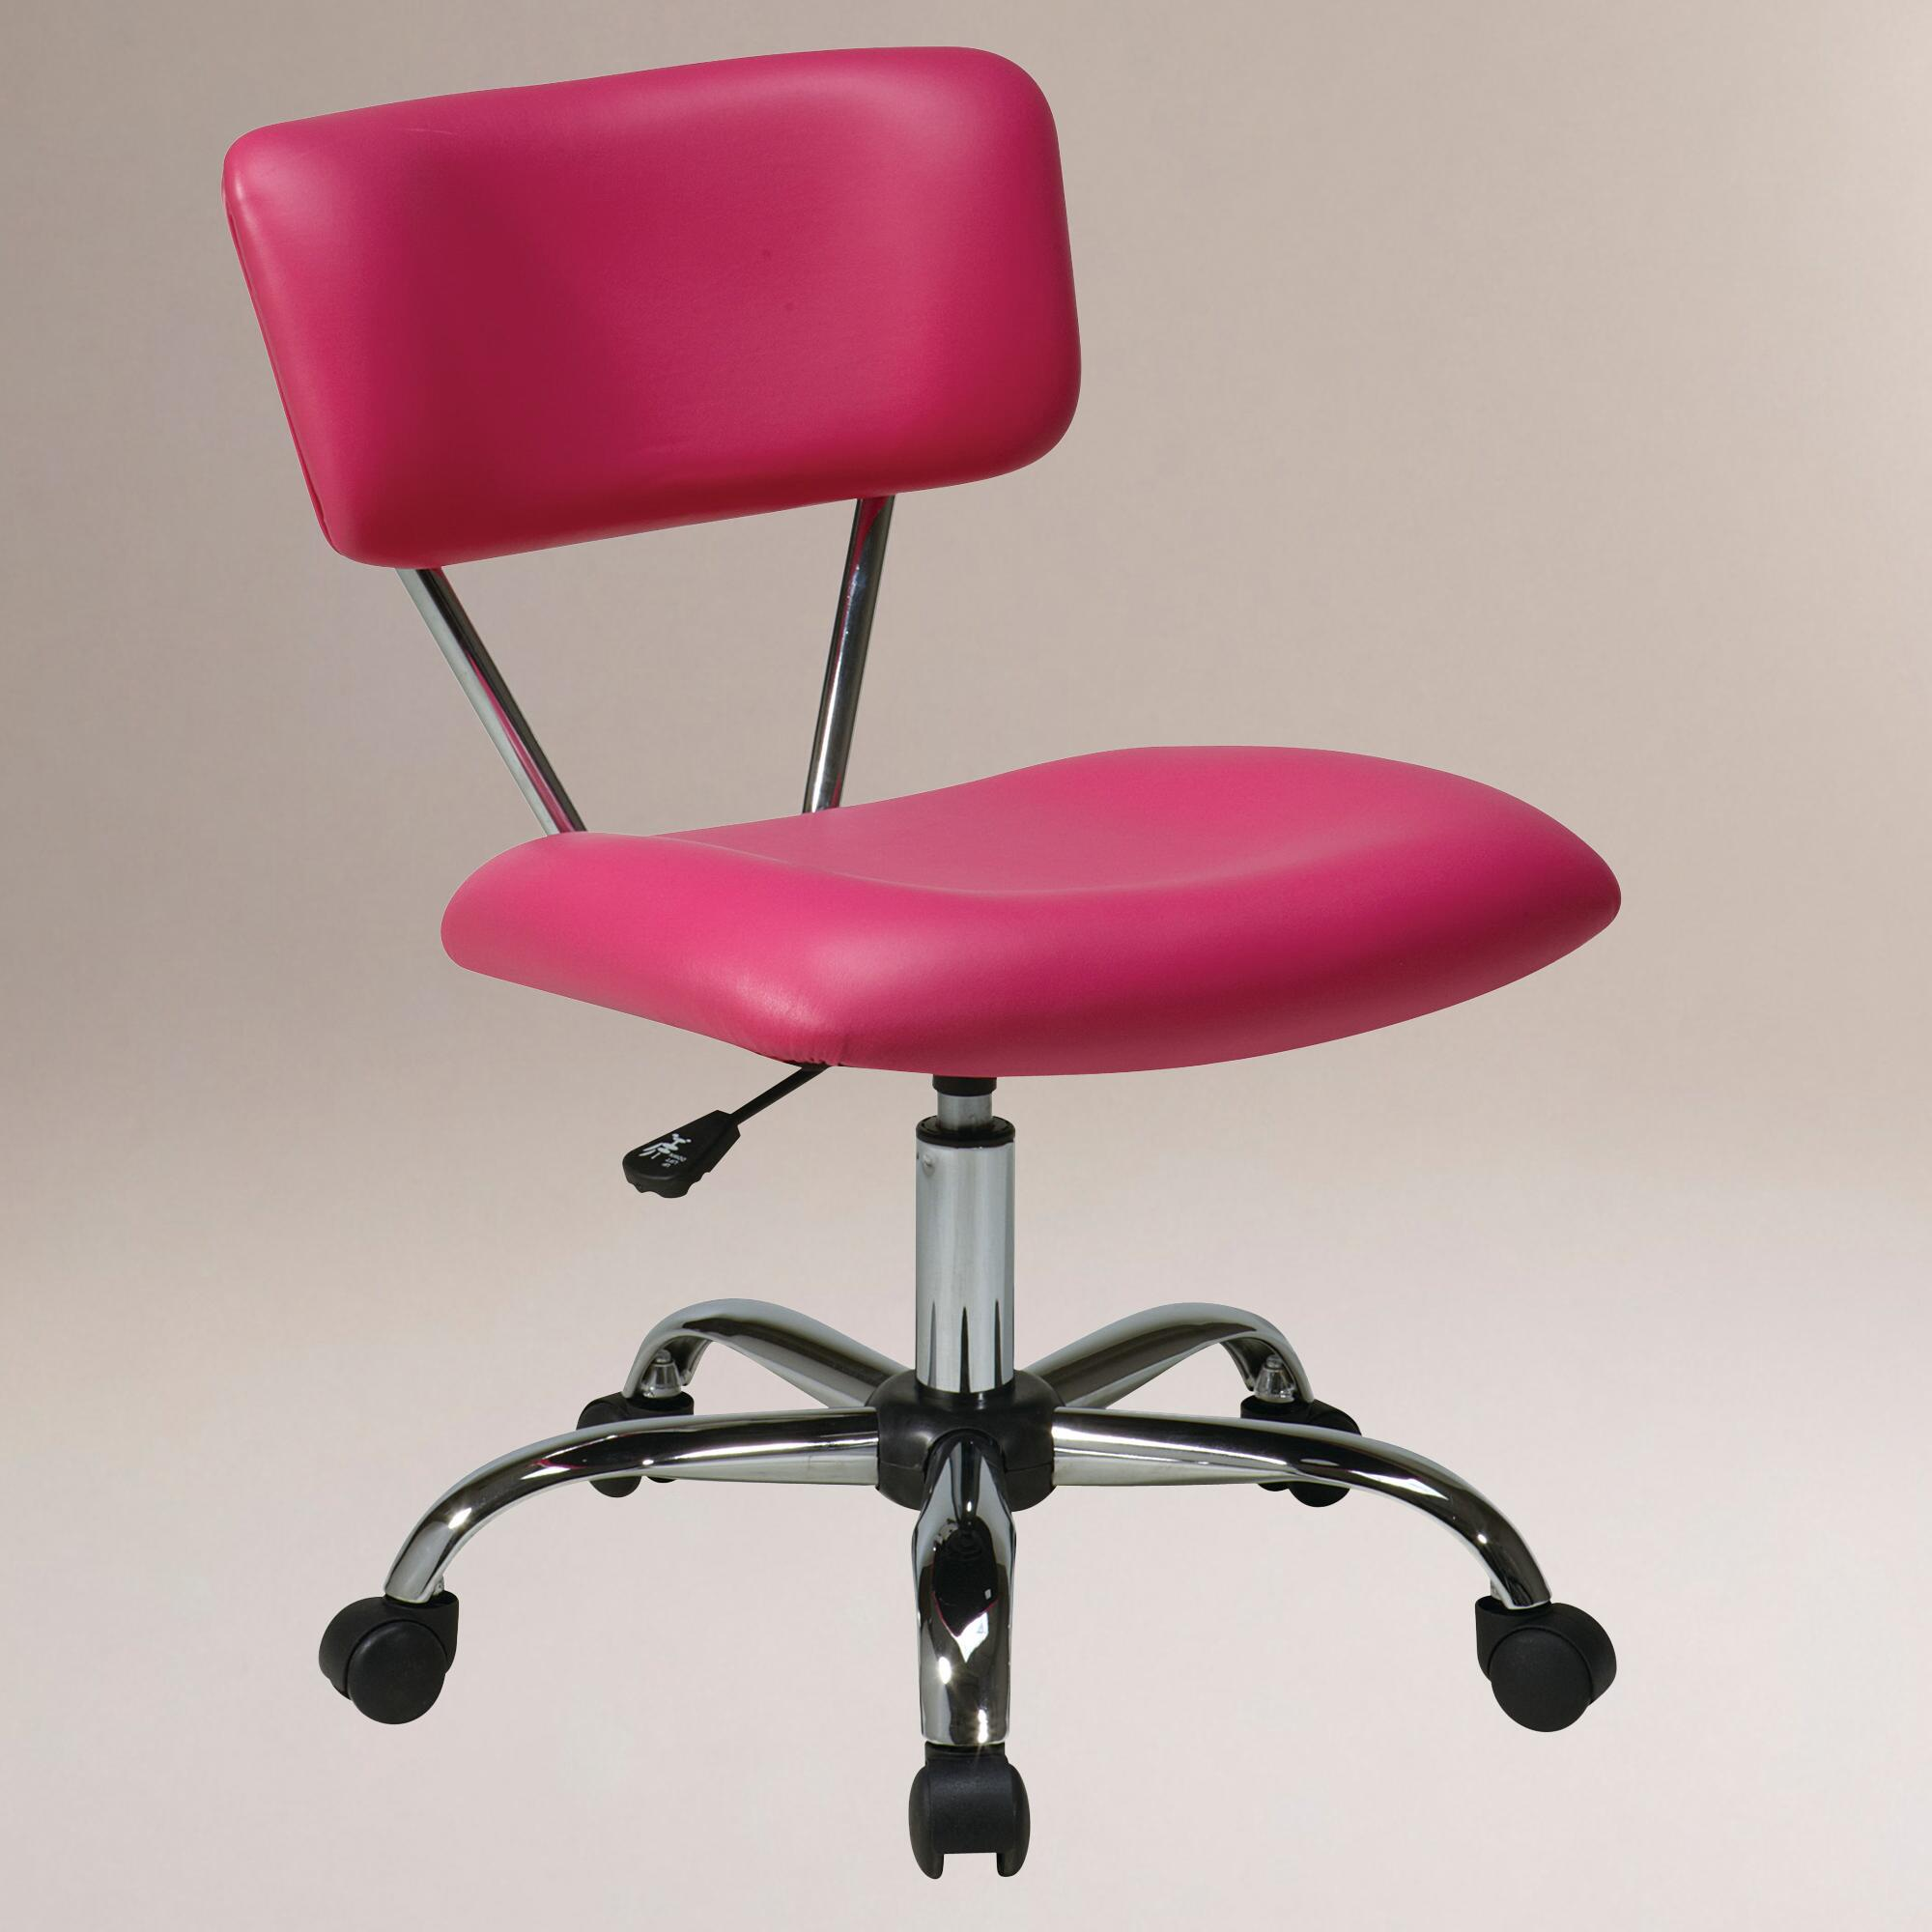 furniture office furniture desk chair pink desk chair